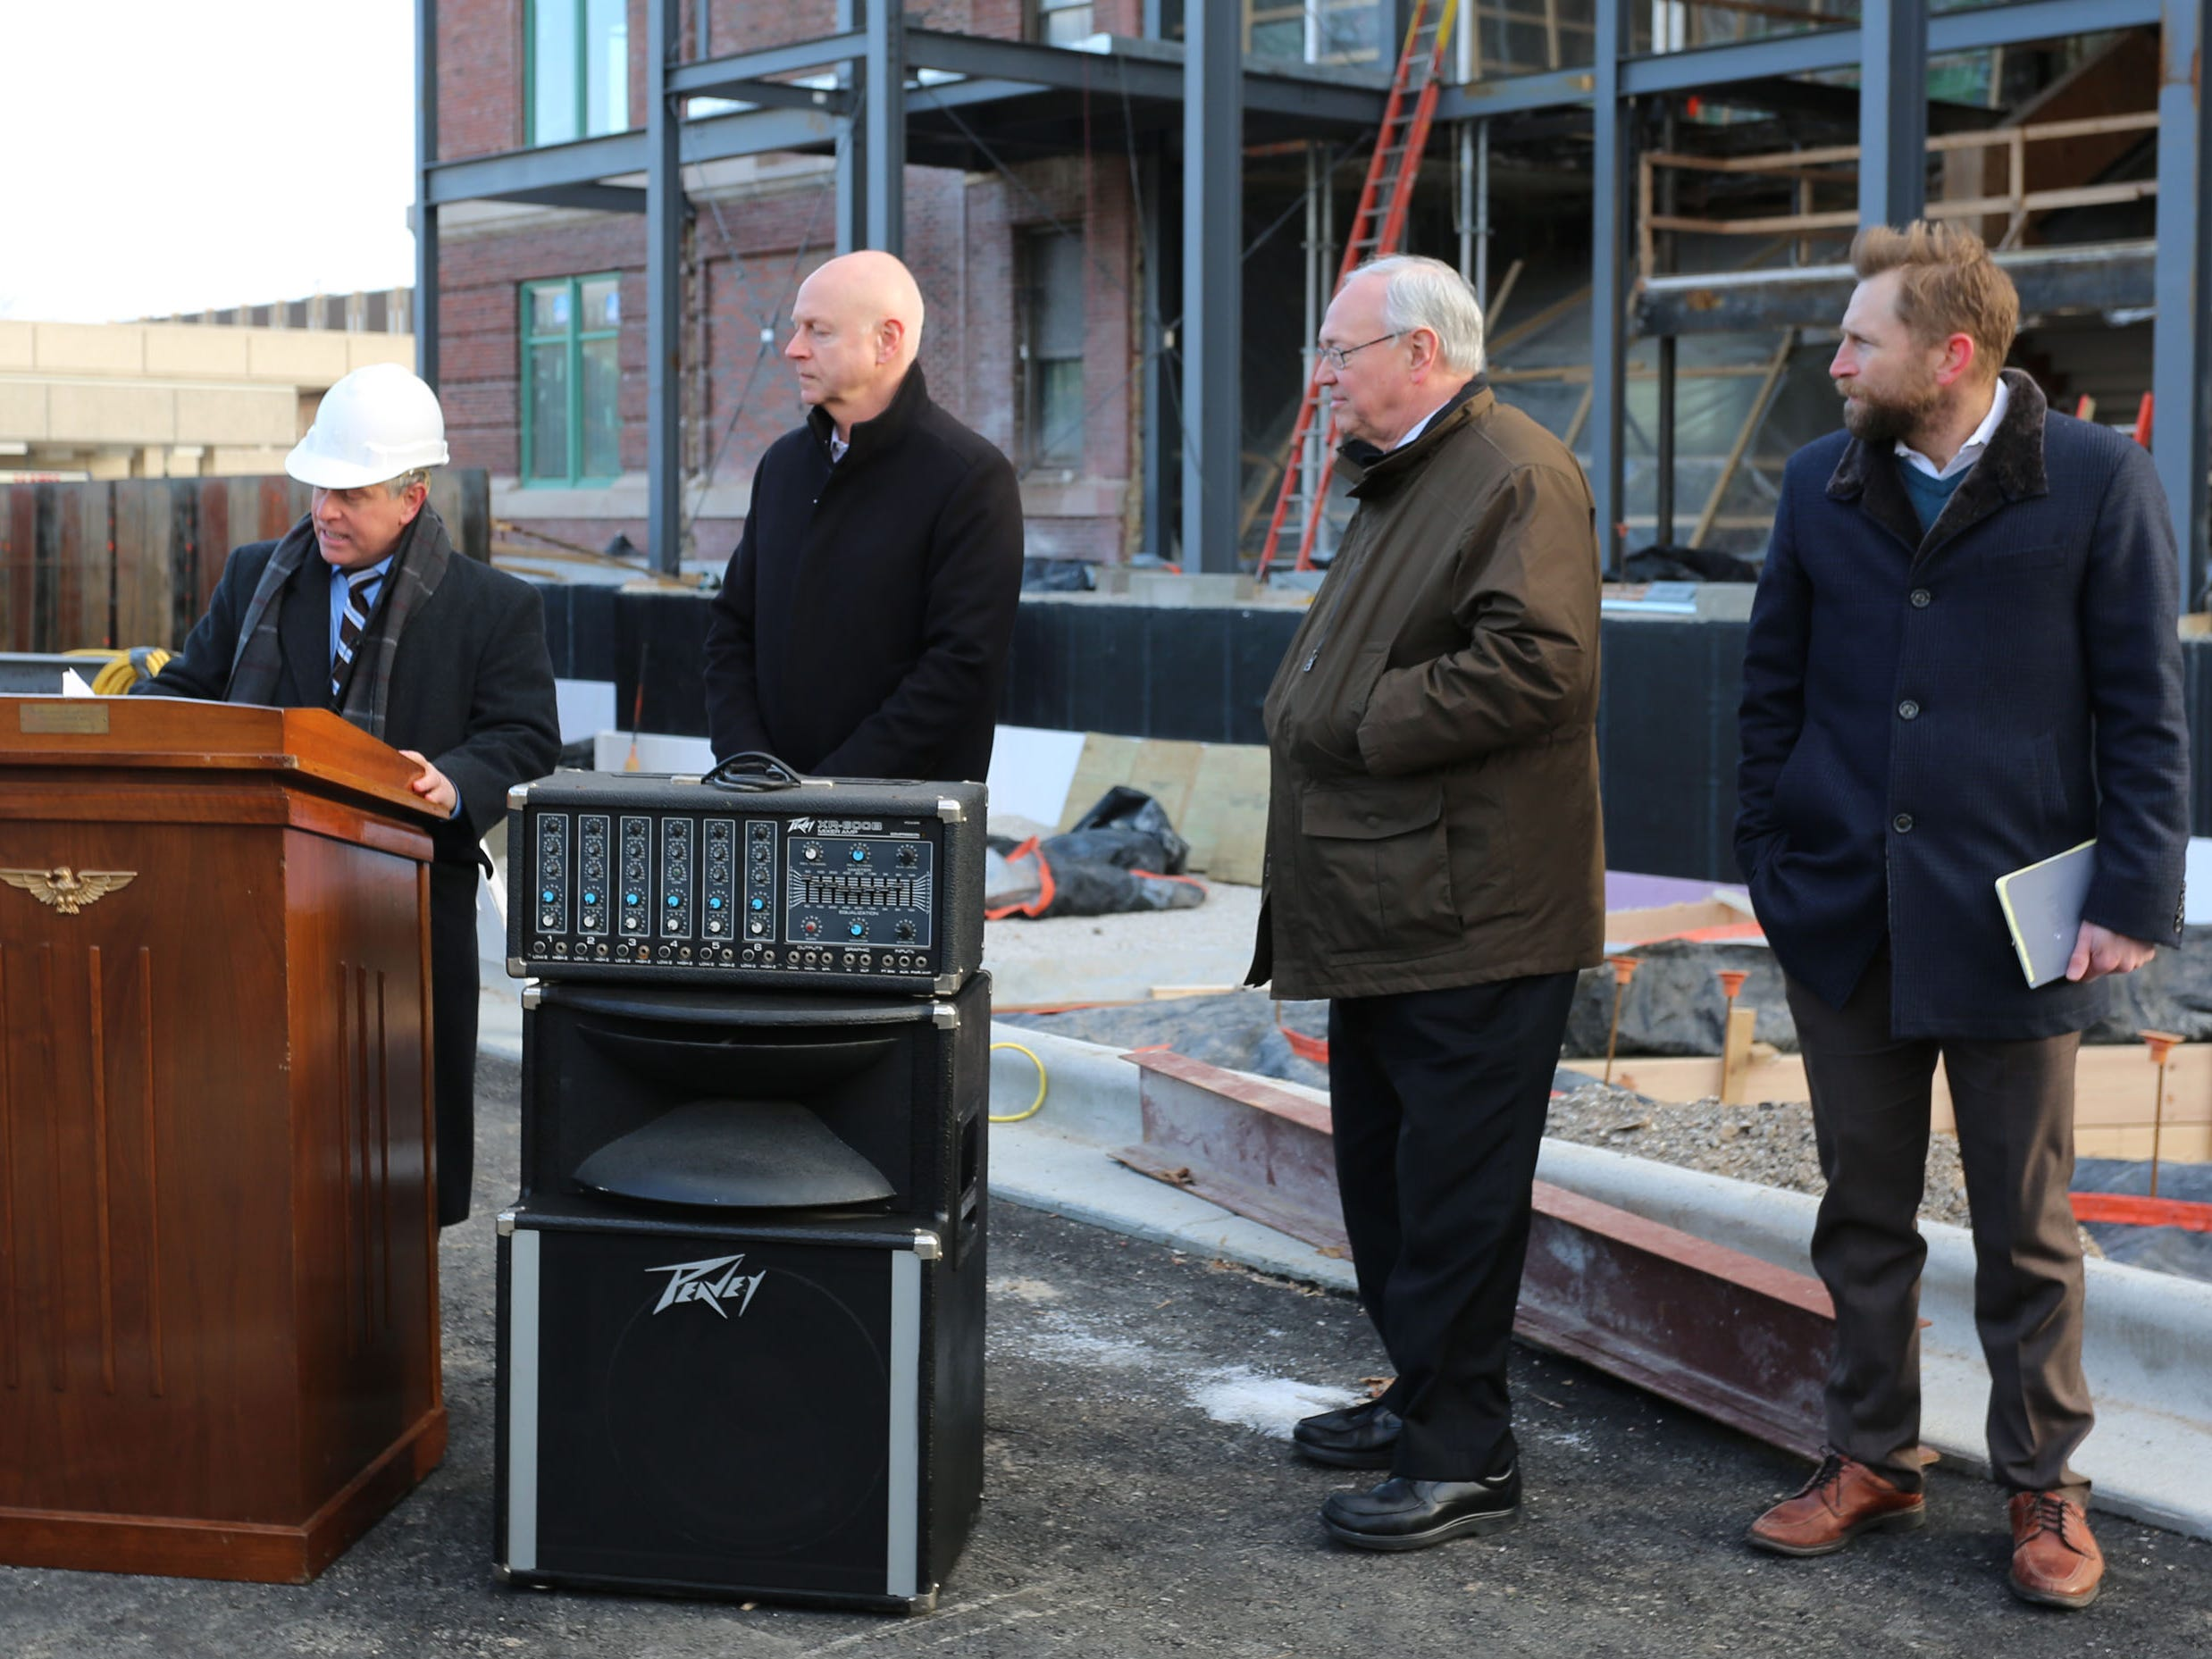 Sheboygan Director of Public Works Dave Biebel, left, speaks at a topping off ceremony for the Sheboygan City Hall 10.5 million dollar renovation project, Wednesday, December 5, 2018, in Sheboygan, Wis. Watching from left are City Administrator Darrell Hoflan, Mayor Michael Vandersteen and Quasius President Matt Quasius.